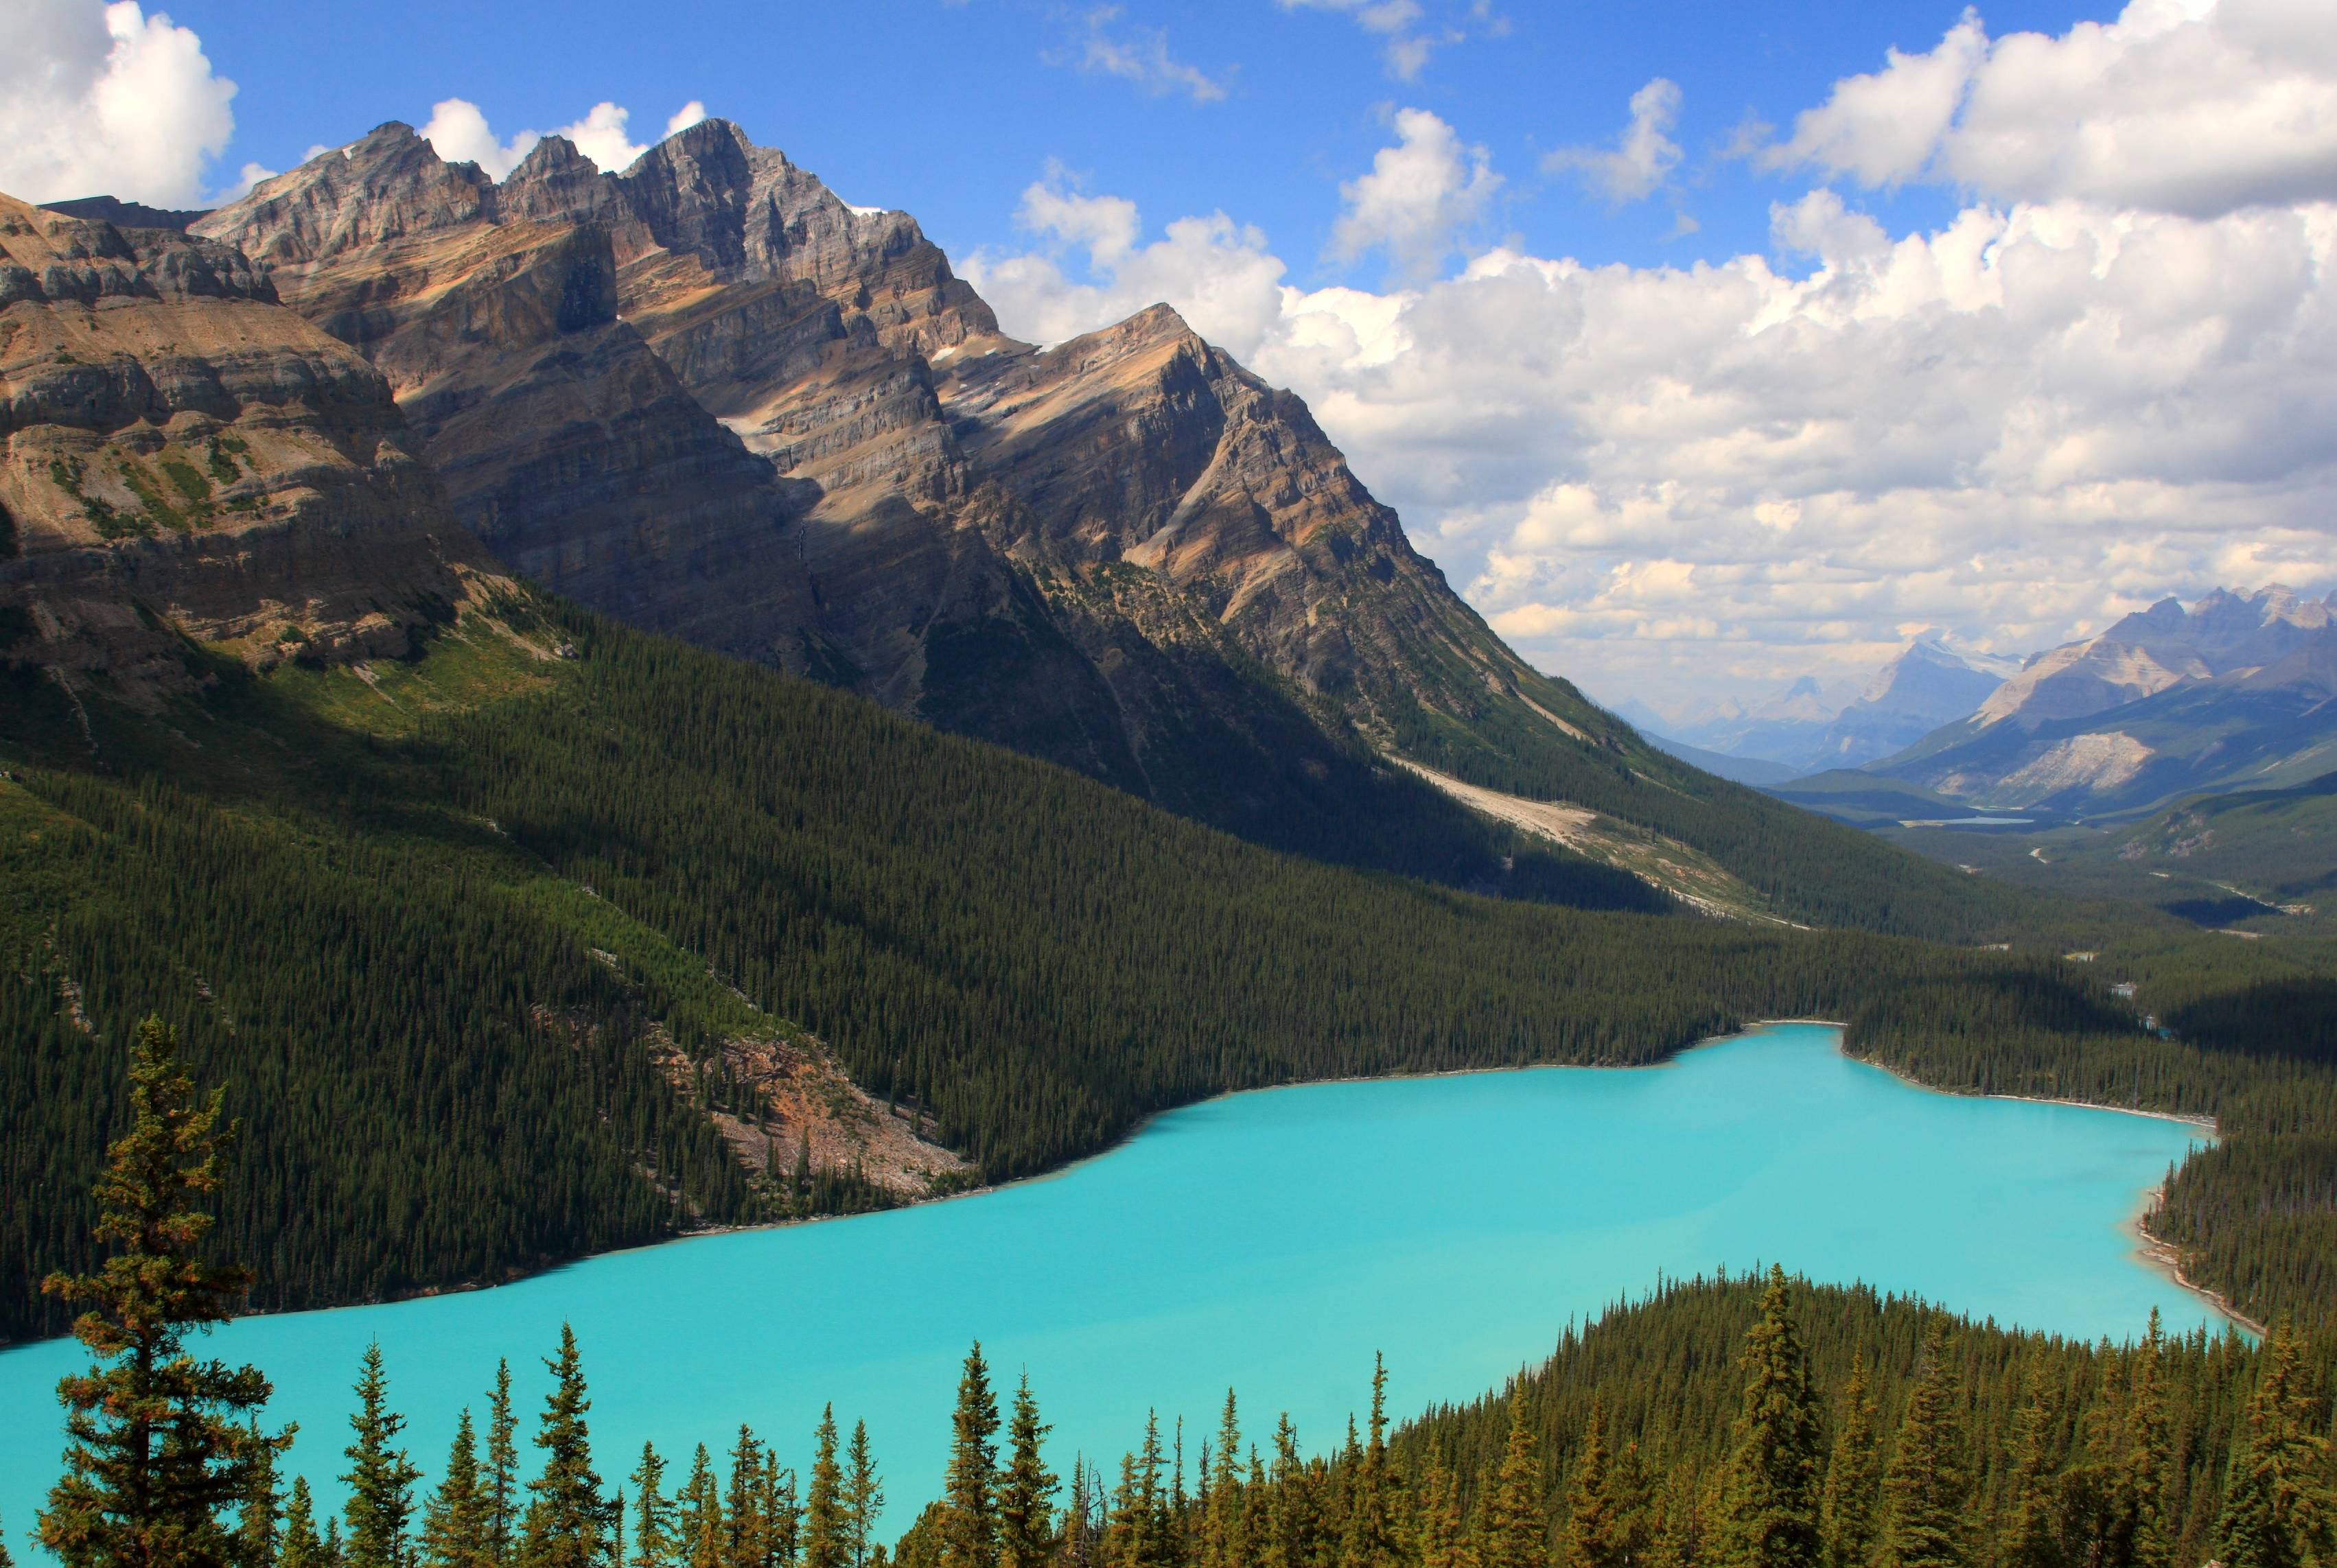 Classic_view_of_a_cloudfree_Peyto_Lake,_